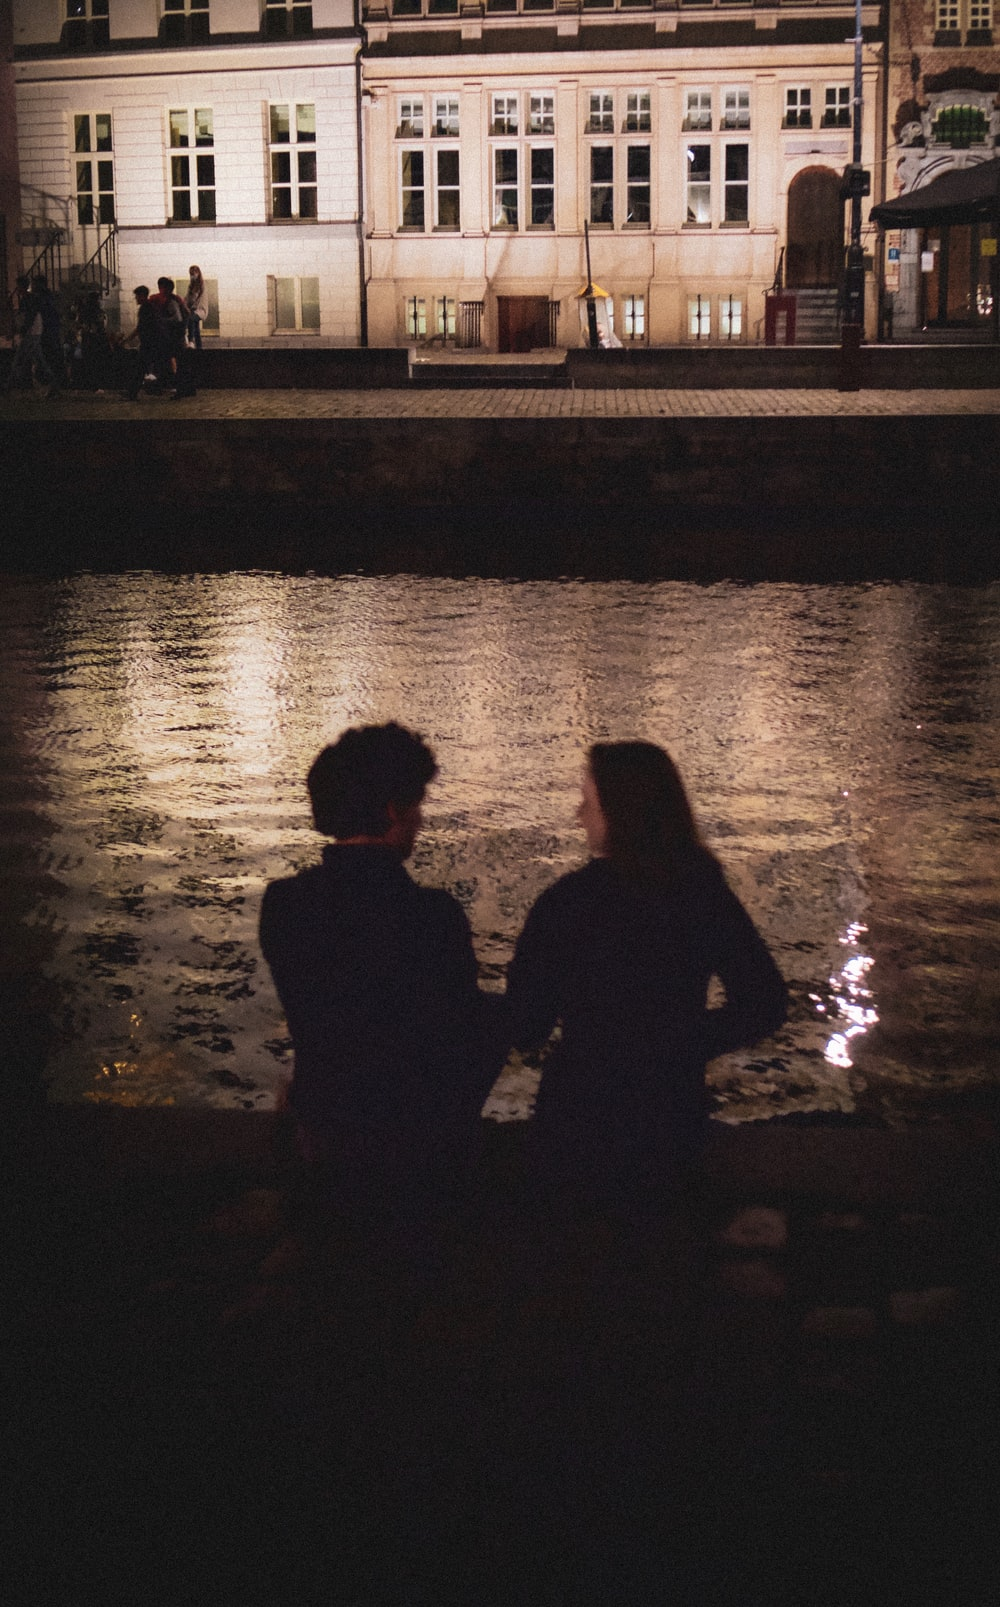 silhouette of man and woman standing beside body of water during night time